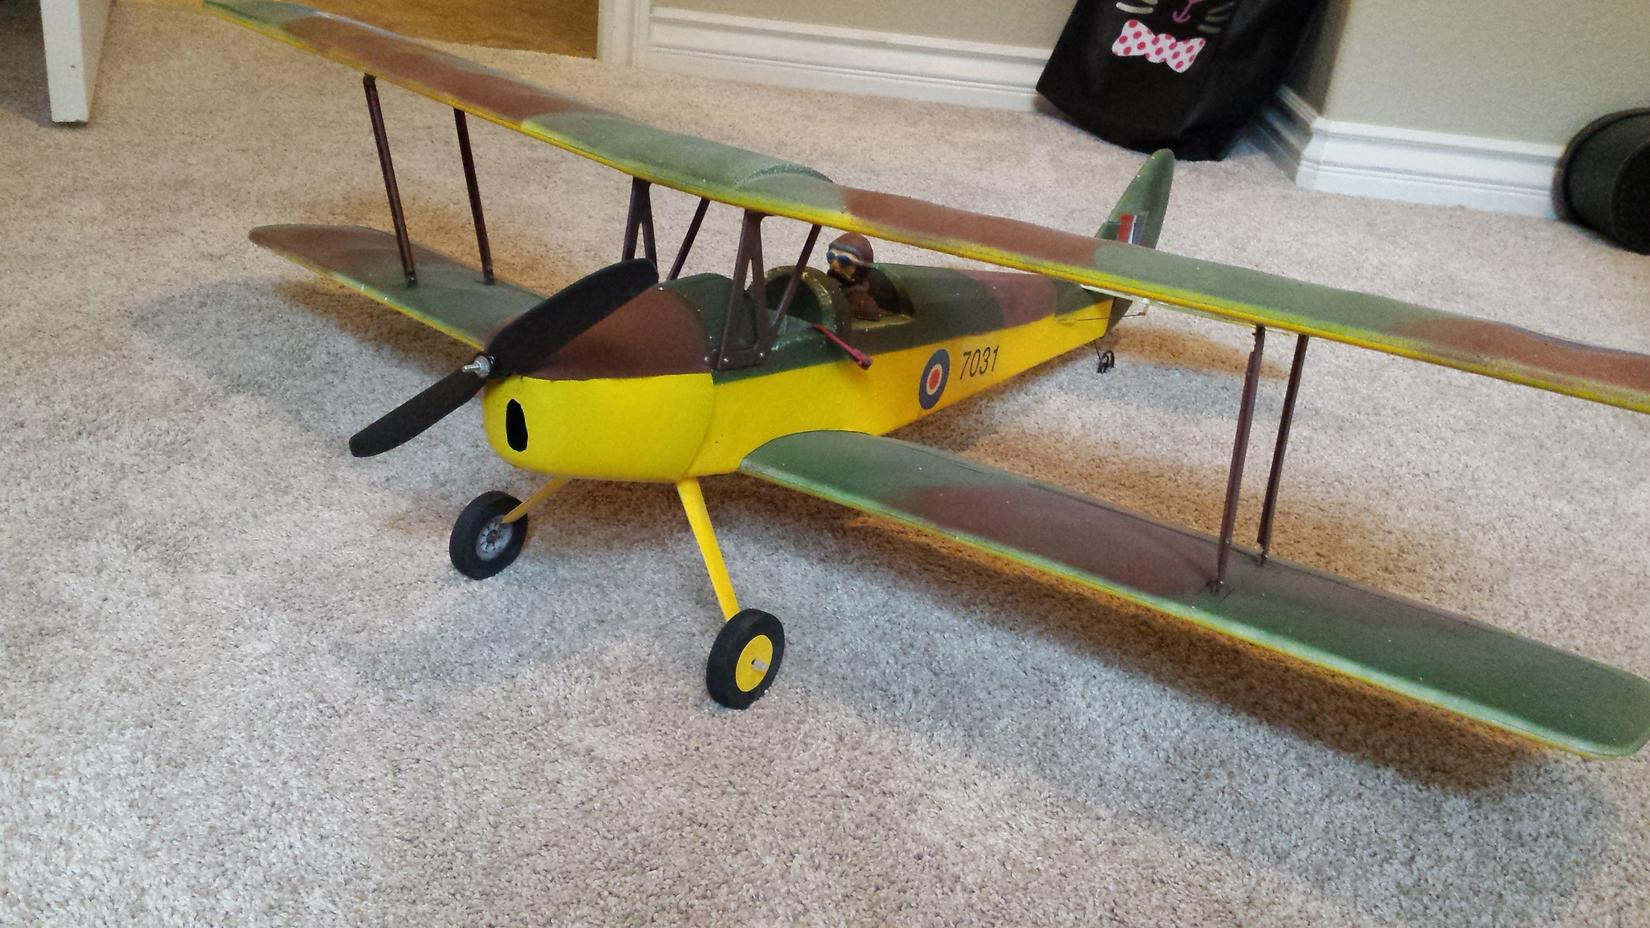 Selling some RC Planes and a Heli over at RC groups - SimHQ